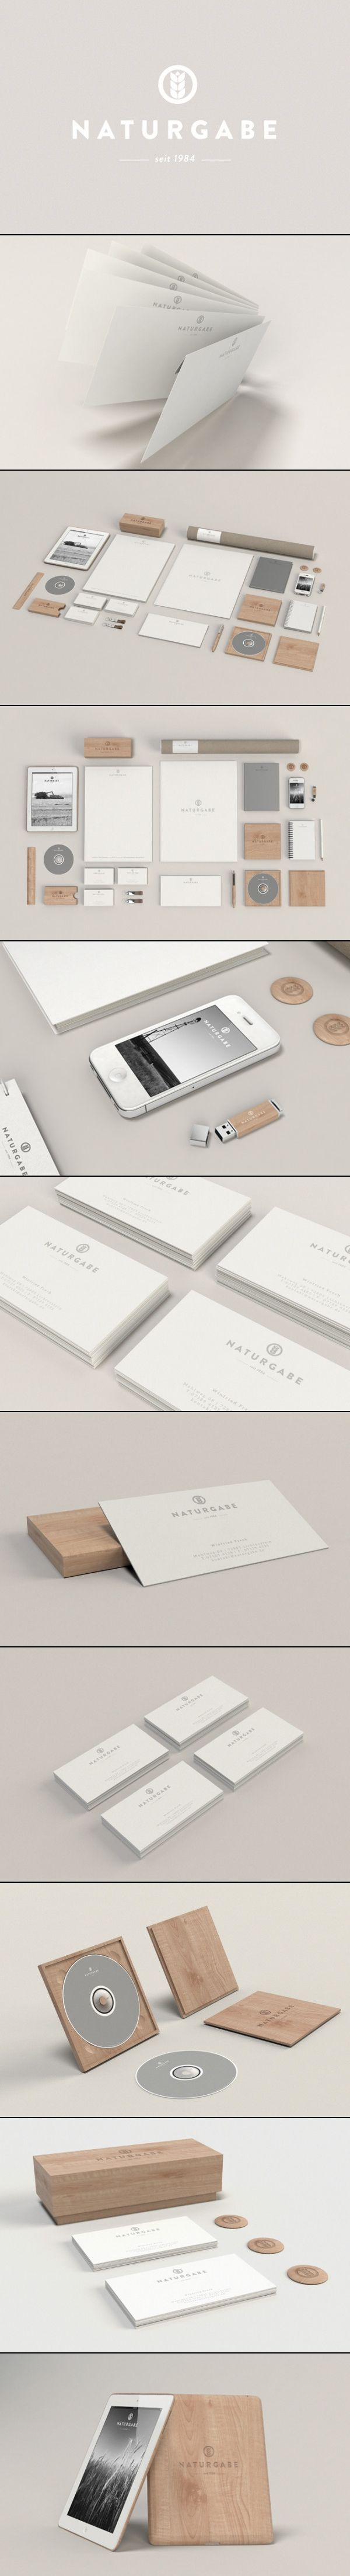 Naturgabe | #stationary #corporate #design #corporatedesign #identity #branding…